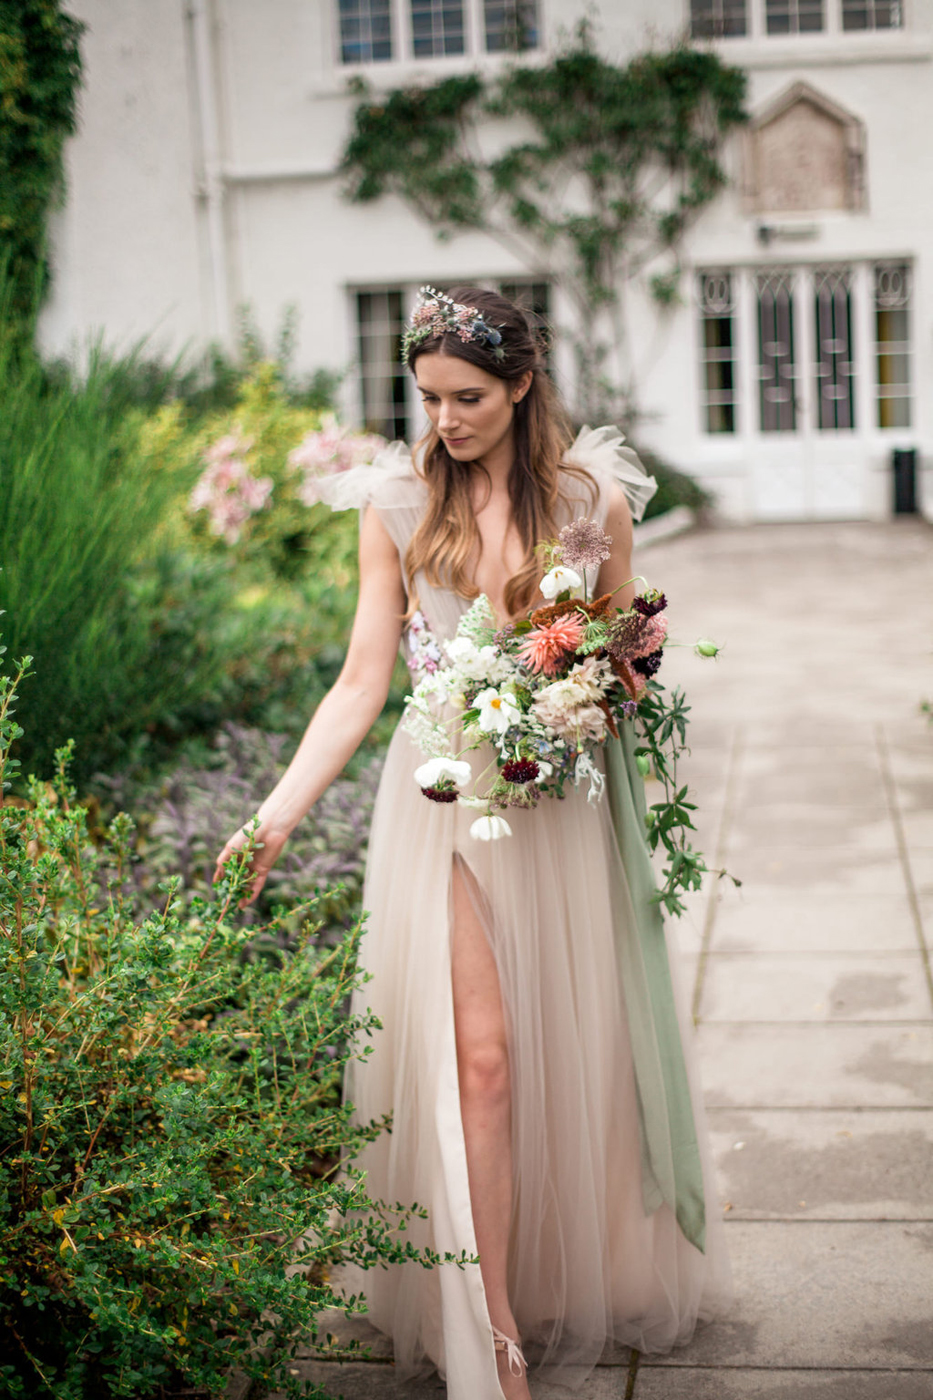 Timeless Arrangements with Scottish Flair - How lucky for our Scottish Highland brides that the country's most sought after florist resides in Edinburgh, just a few short hours away from the castles and the rolling green hills of the highlands. Fiona of Pyrus Botanicals has drawn from the rich heritage of the landscape around her to reinterpret floral design. Her arrangements are organic and wild, highlighting fresh, vibrant blooms and adding an air of timeless romance to any special day.Visit WebsiteScottish Highlands, United KingdomEmail: studio@pyrusbotanicals.com